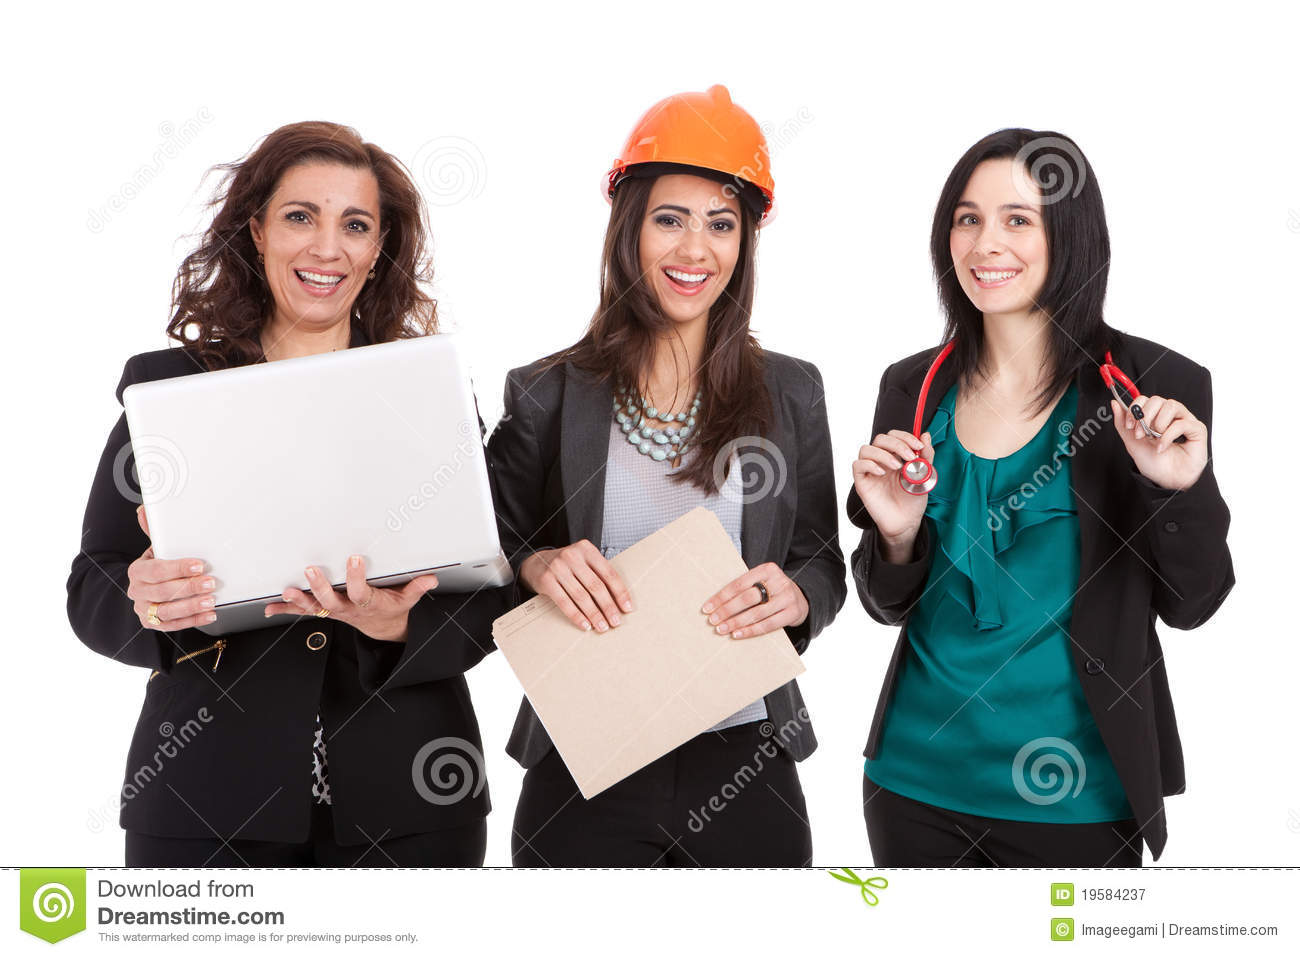 women in the workforce essay Women continue to climb up the corporate ladder, and are becoming an  important  this is not an example of the work written by our professional essay  writers  however, with an increase in the number of women in the workforce  comes an.